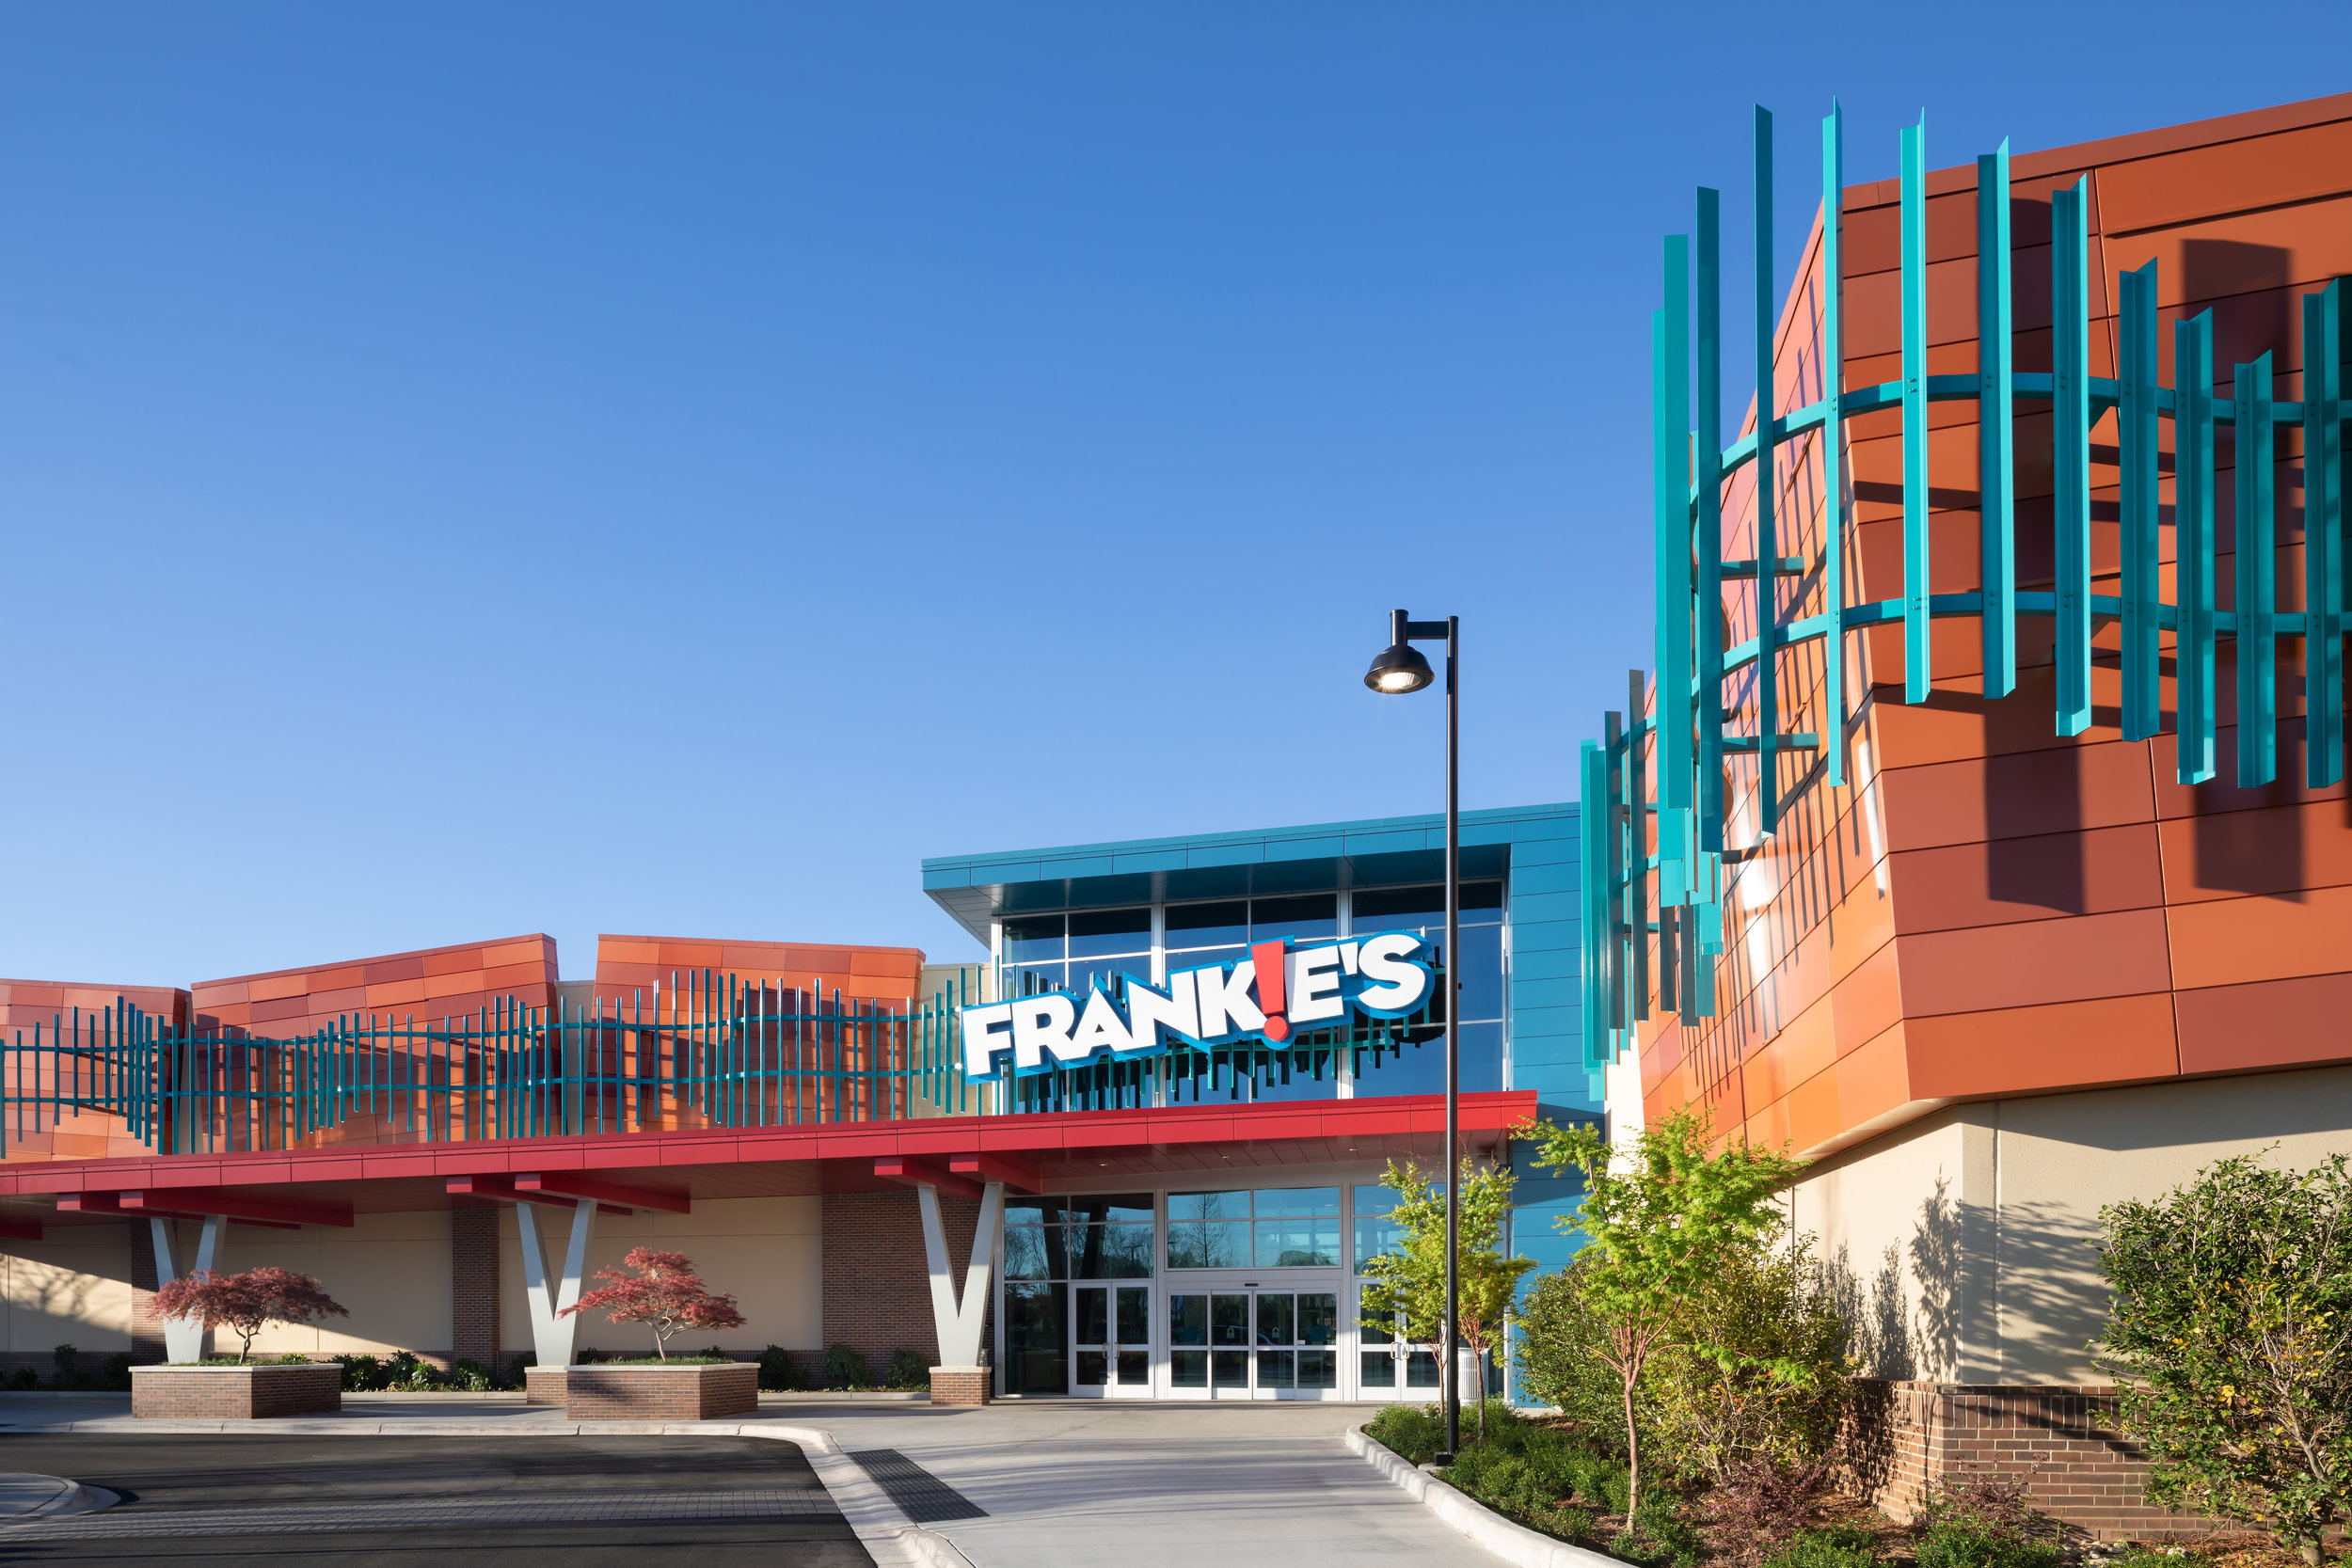 ADW-Entertainment-Frankie's-Fun-Park-Huntersville-NC-Exterior-Main Entrance.jpg